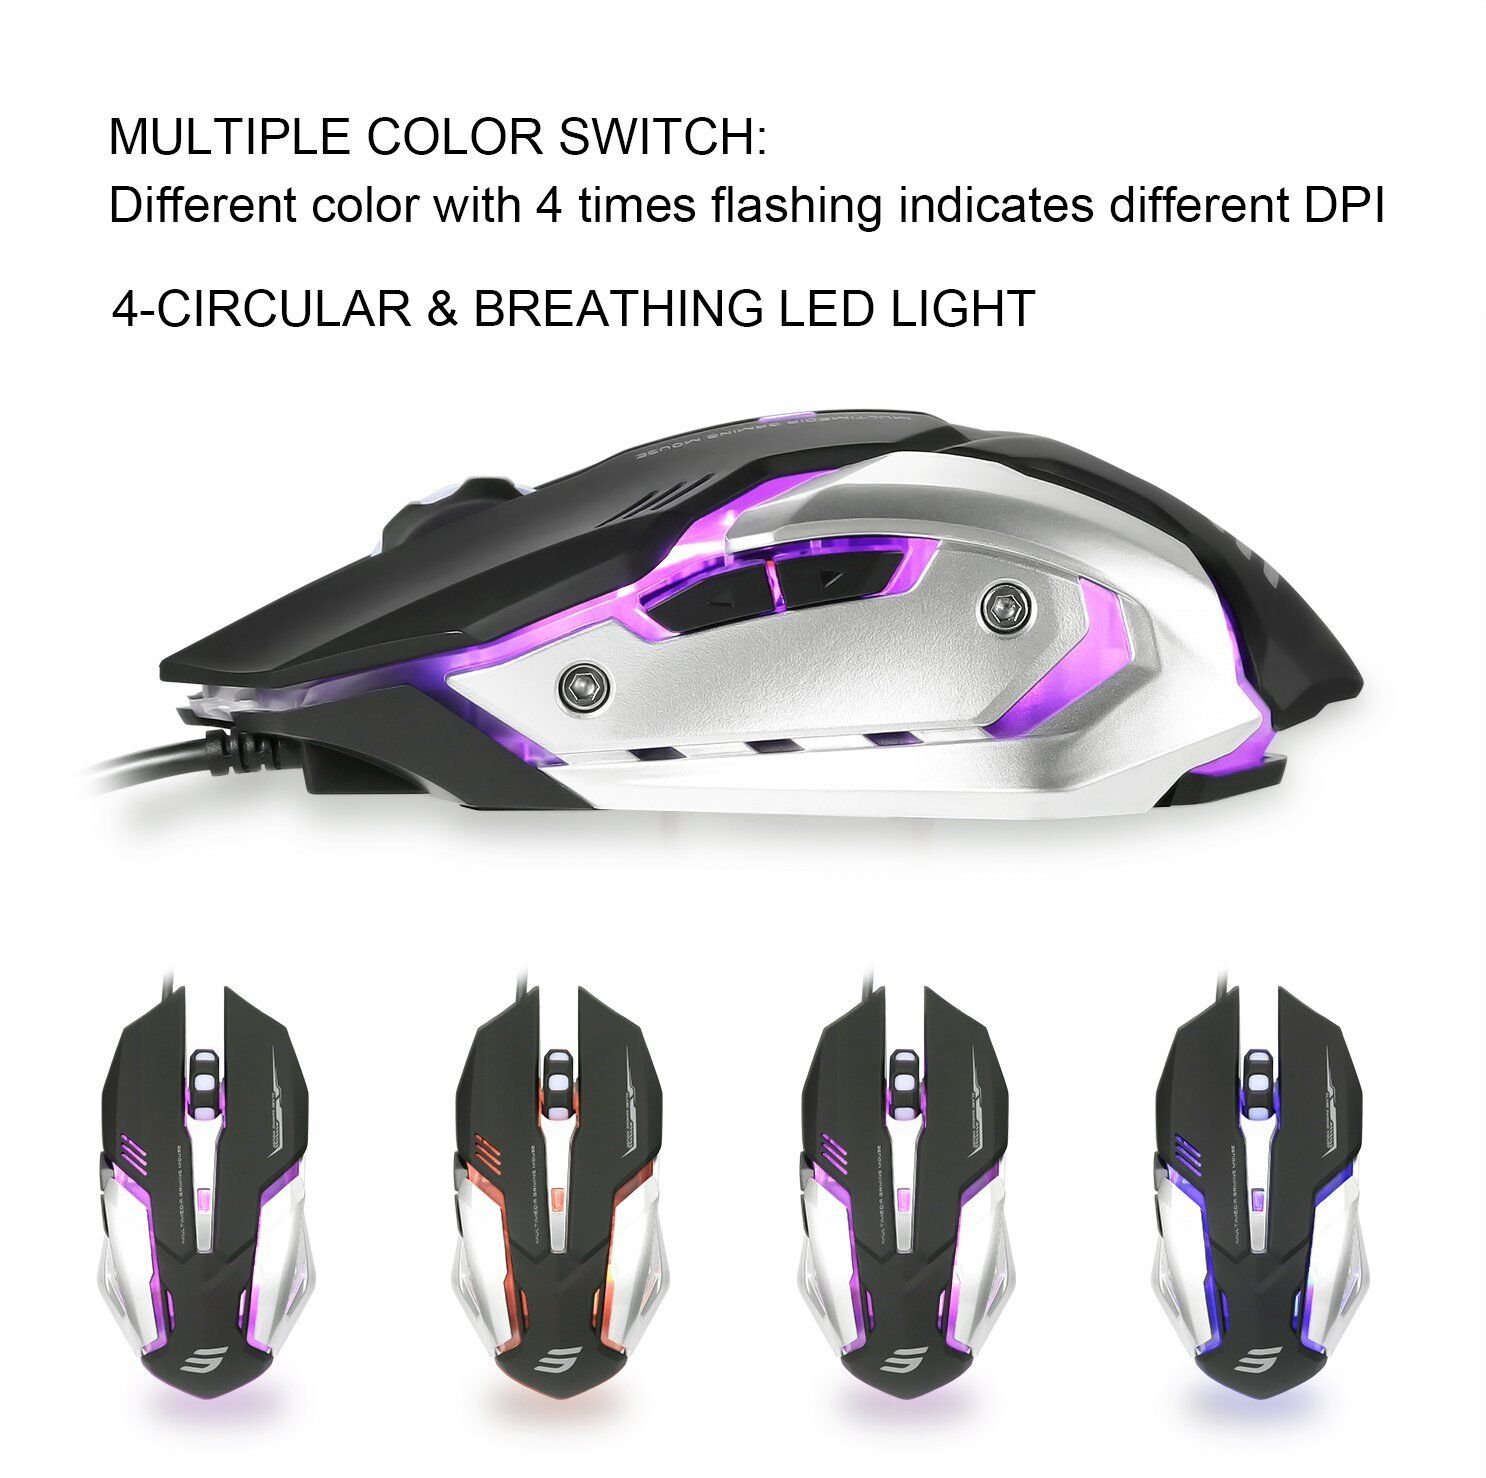 Black 4 Circular /& Breathing LED Light ATTONE Gaming mouse 6 Programmable Buttons 4 Adjustable DPI Levels Wired Mouse Used for games and office